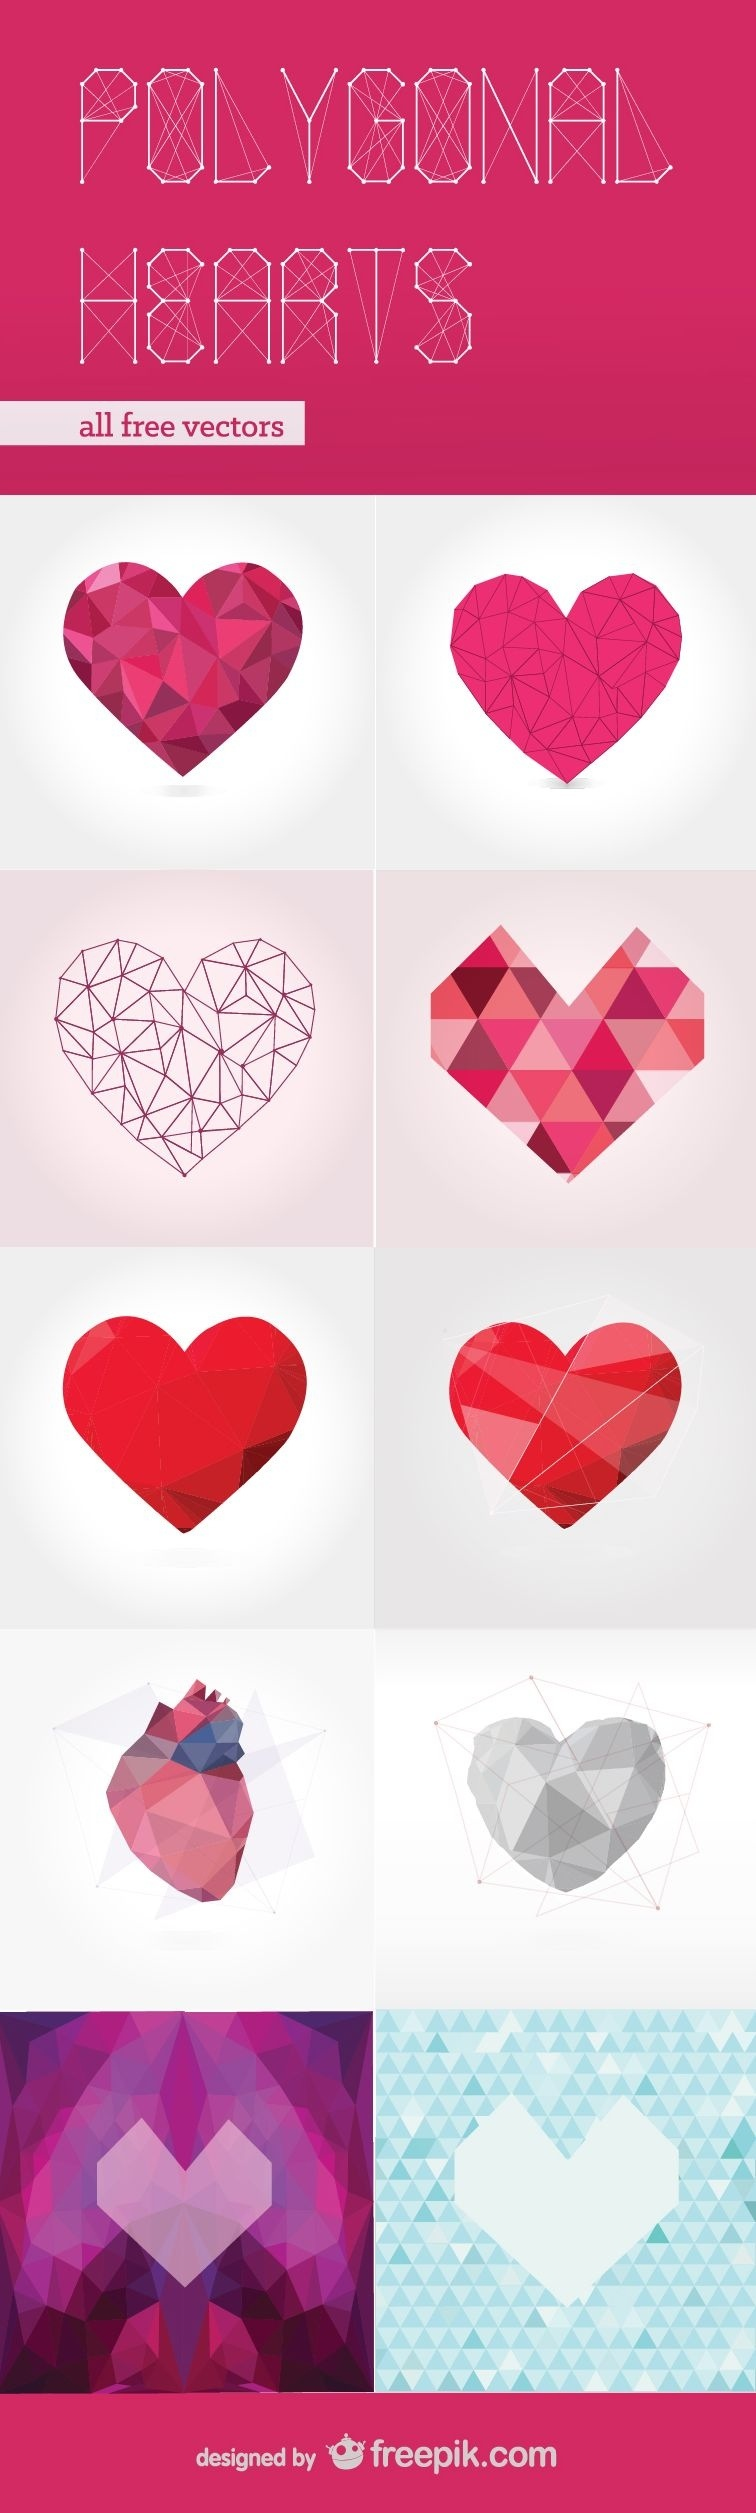 Free Vector Pack: Polygonal Hearts